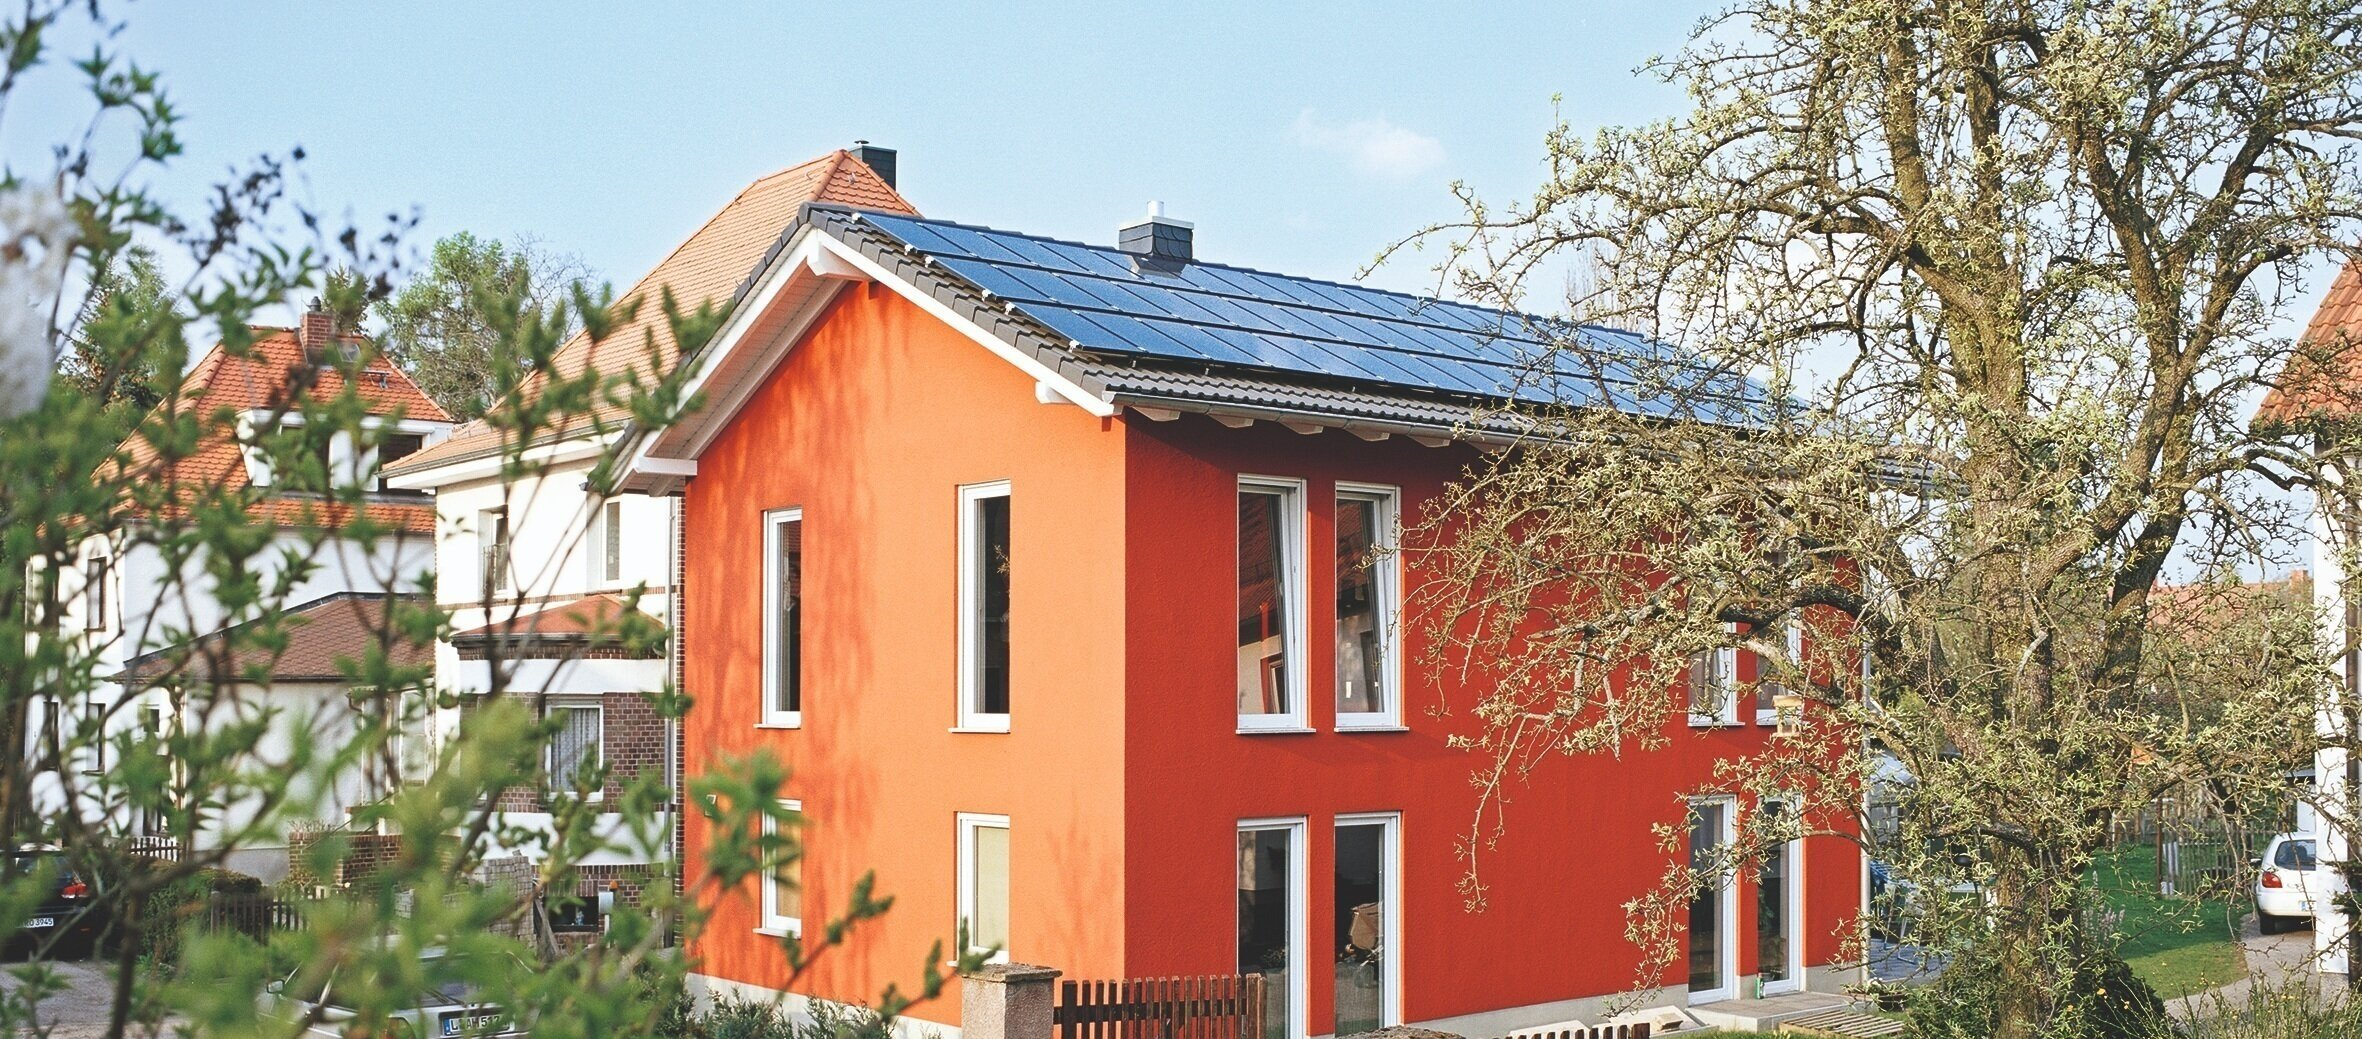 Your Comprehensive Solar Energy Solution Provider